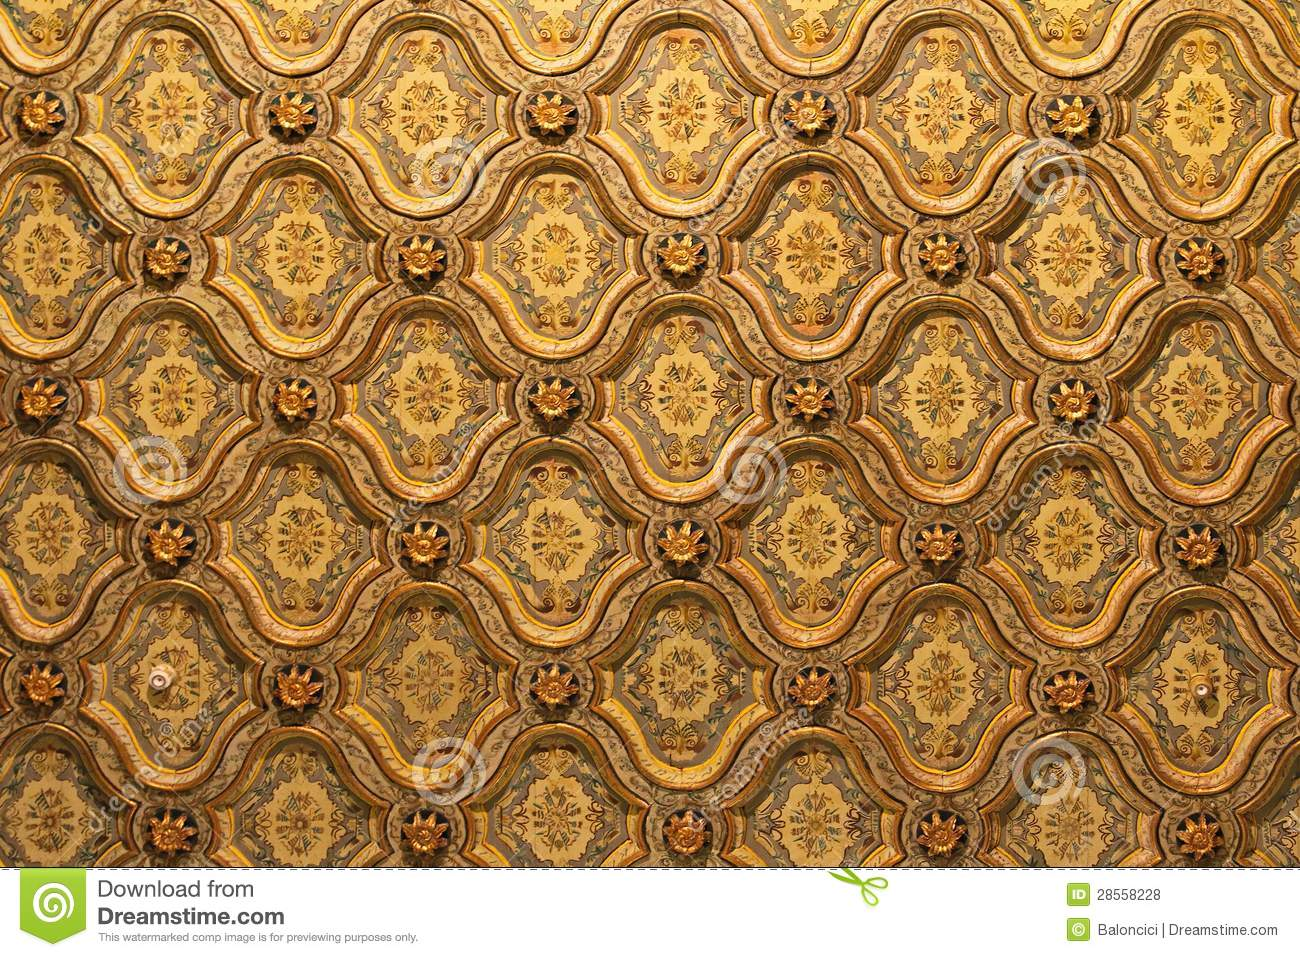 Egypt Ceiling Pattern Royalty Free Stock Photos - Image: 28558228